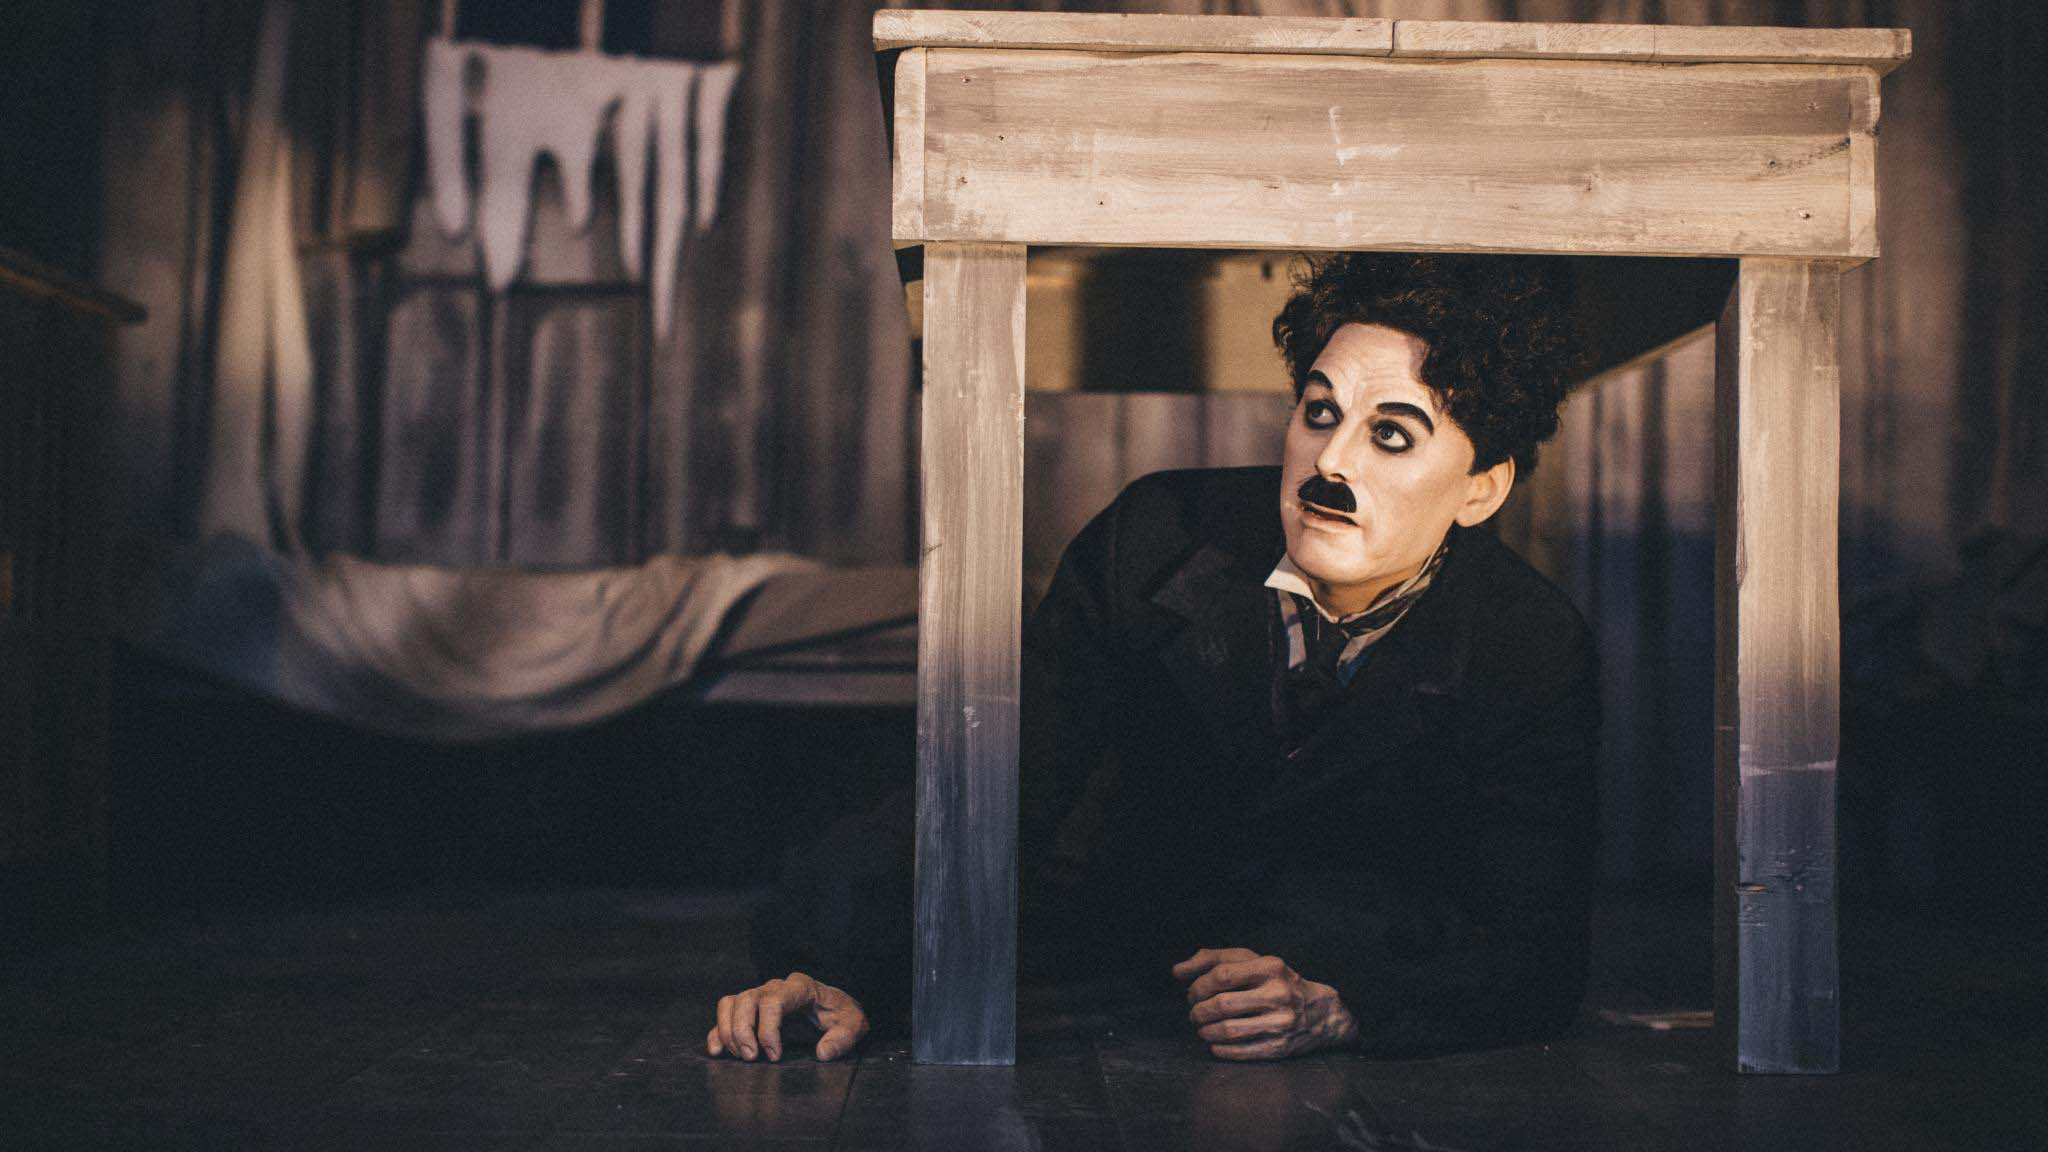 Charlie Chaplin, actor, movies, Switzerland, Chaplin's World museum